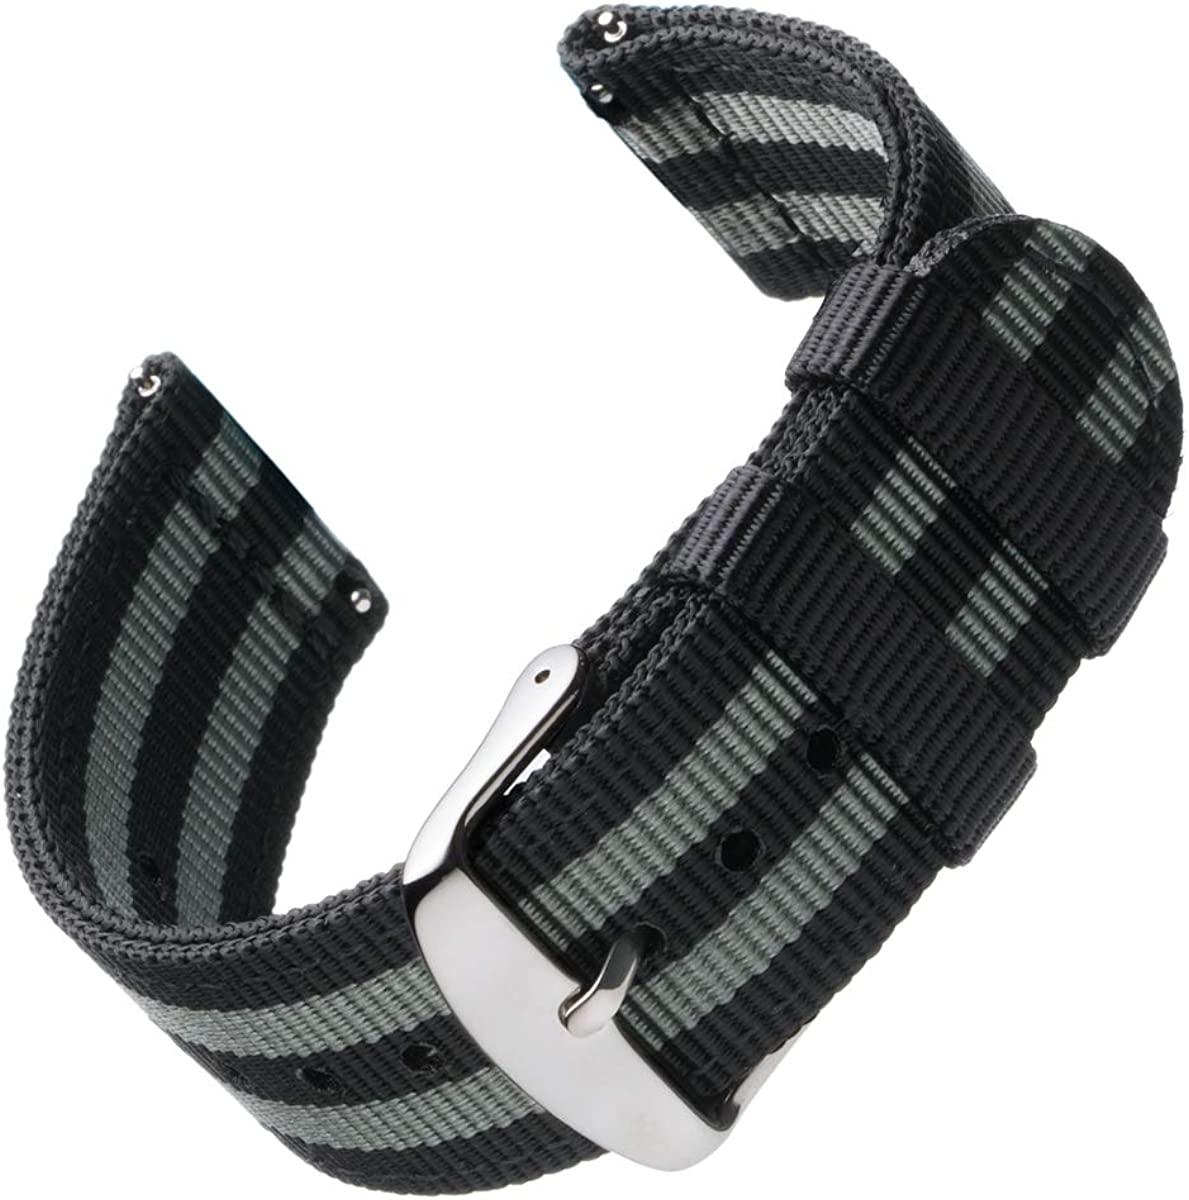 Archer Watch Straps - Premium Nylon Quick Release Replacement Watch Bands for Men and Women, Watches and Smartwatches   Multiple Colors, 18mm, 20mm, 22mm